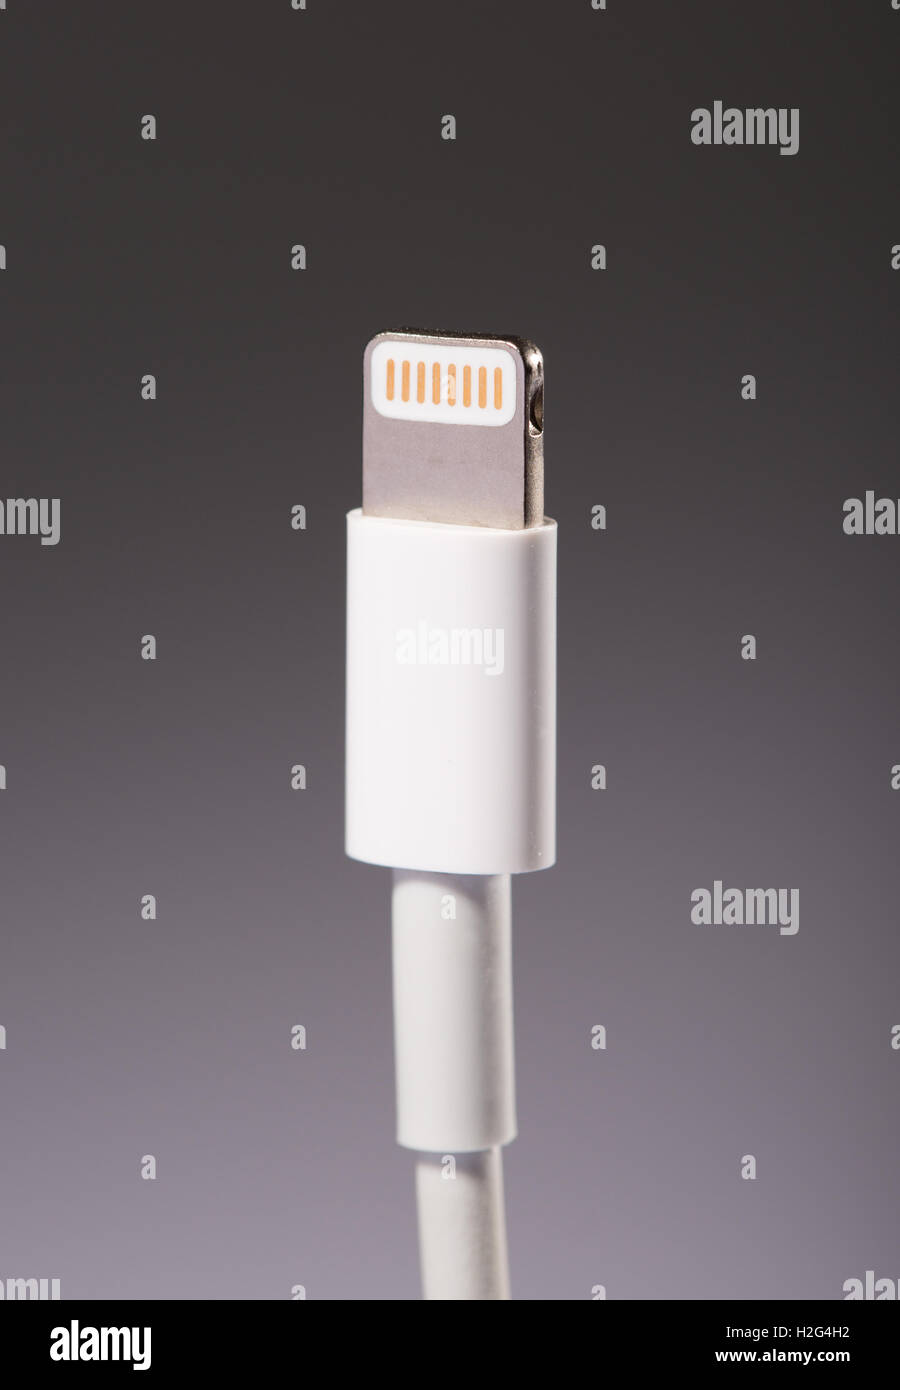 Apple Lightning cable - Stock Image